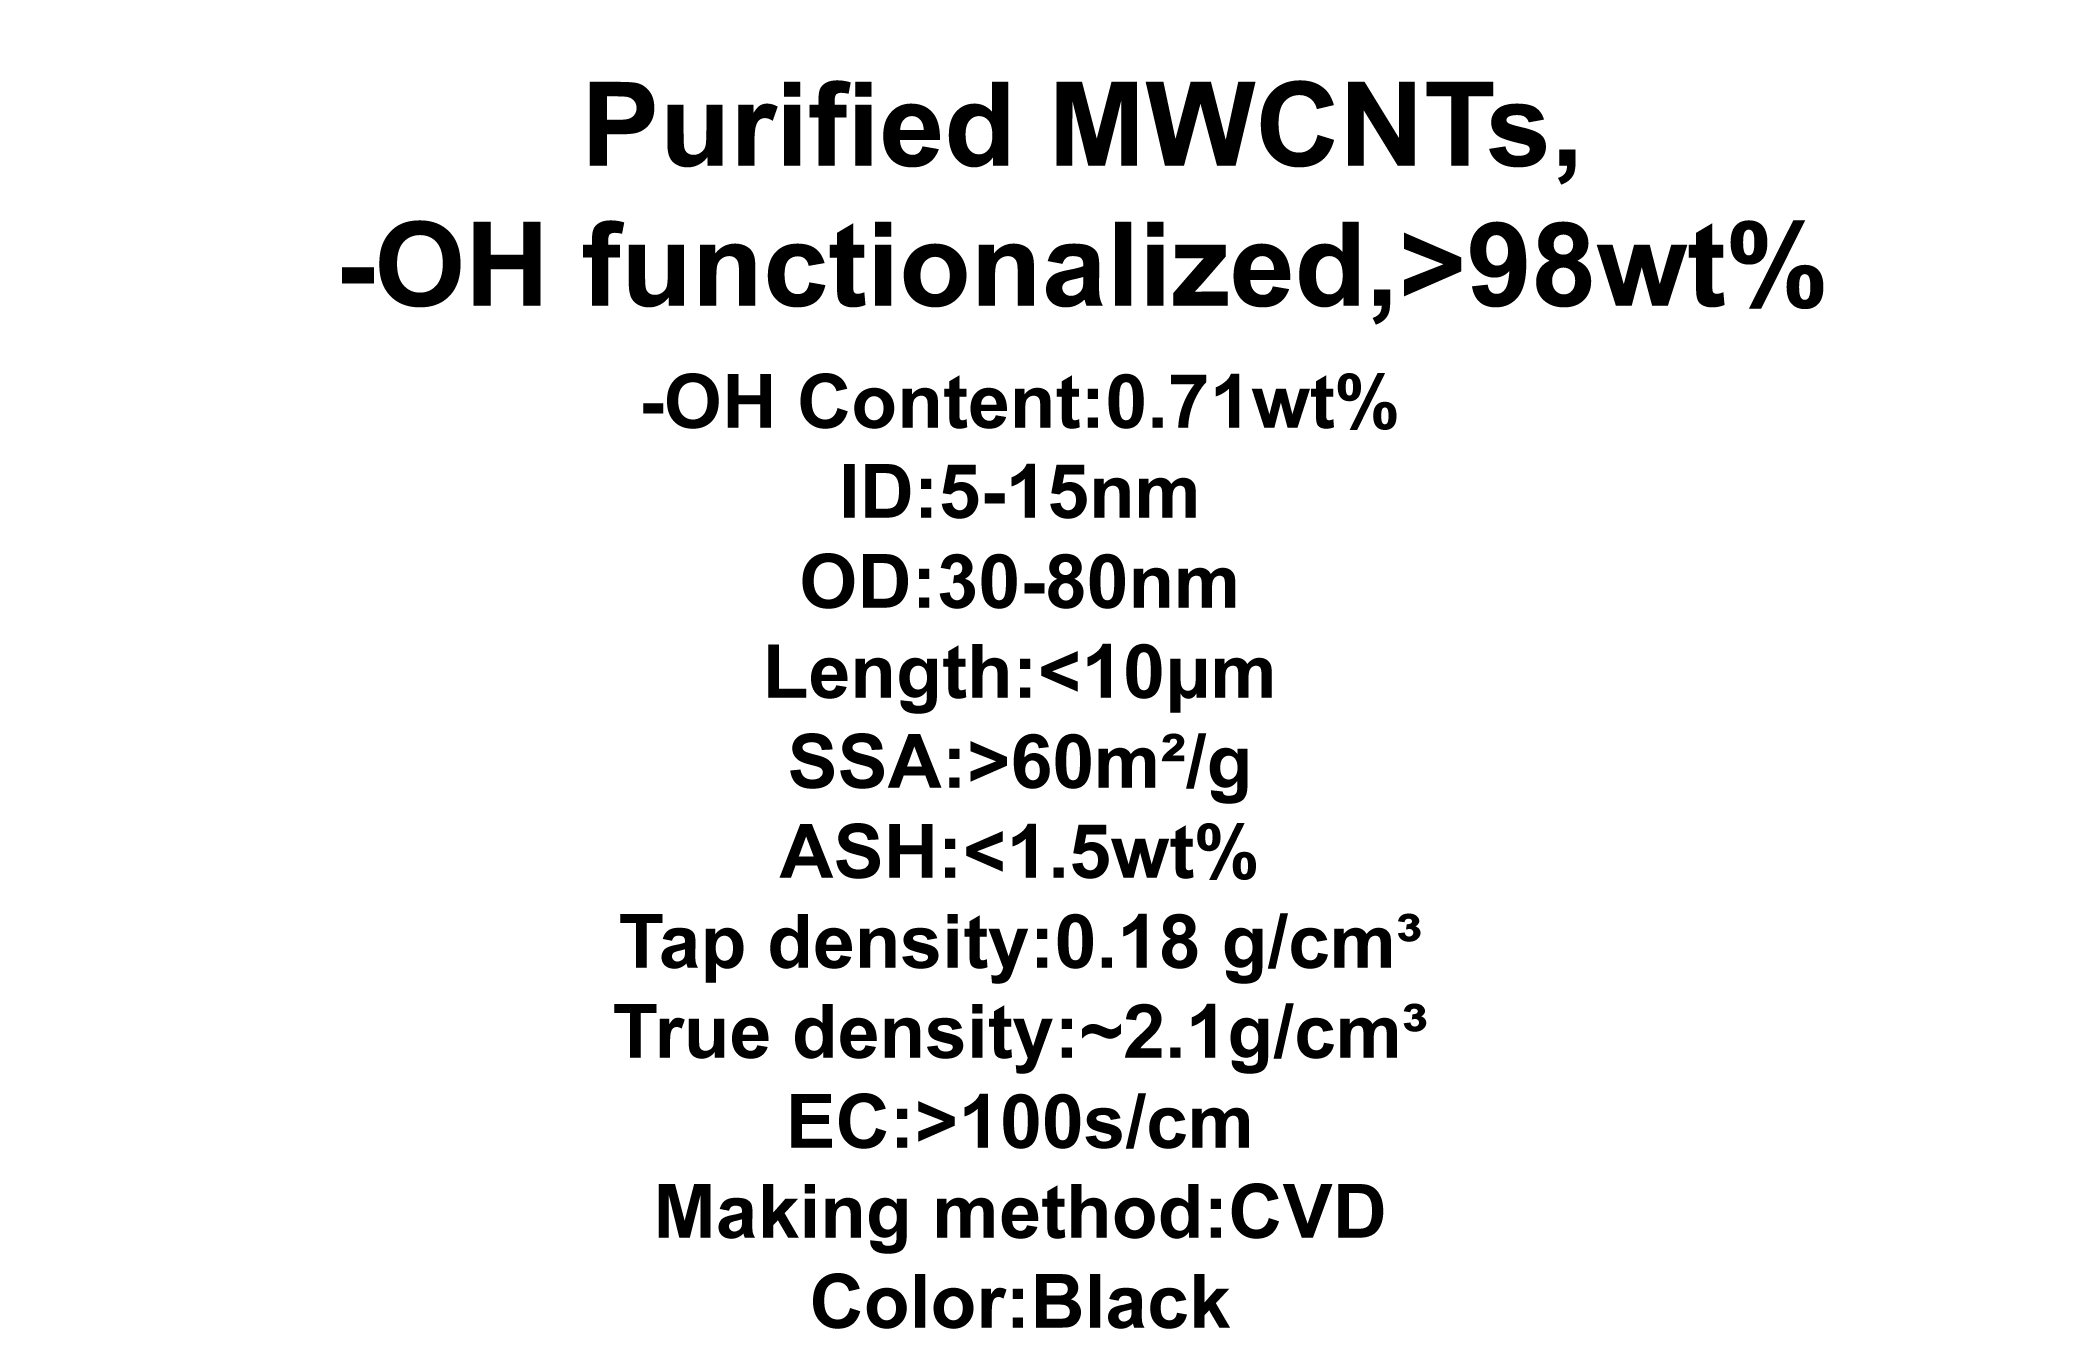 Purified MWCNTs, -OH functionalized (TNMH8)